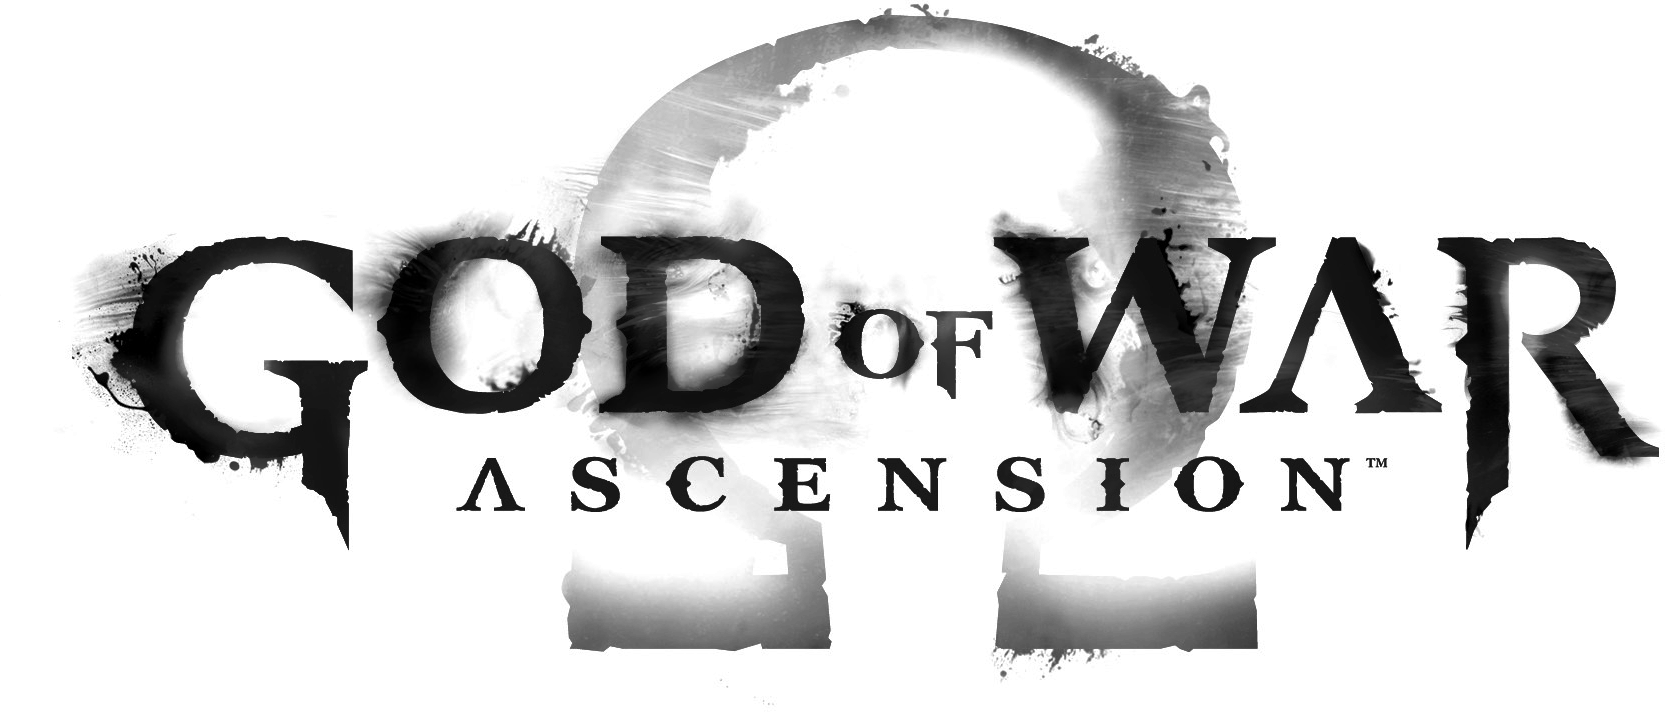 Datei:God of war ascension logo.png – Wikipedia